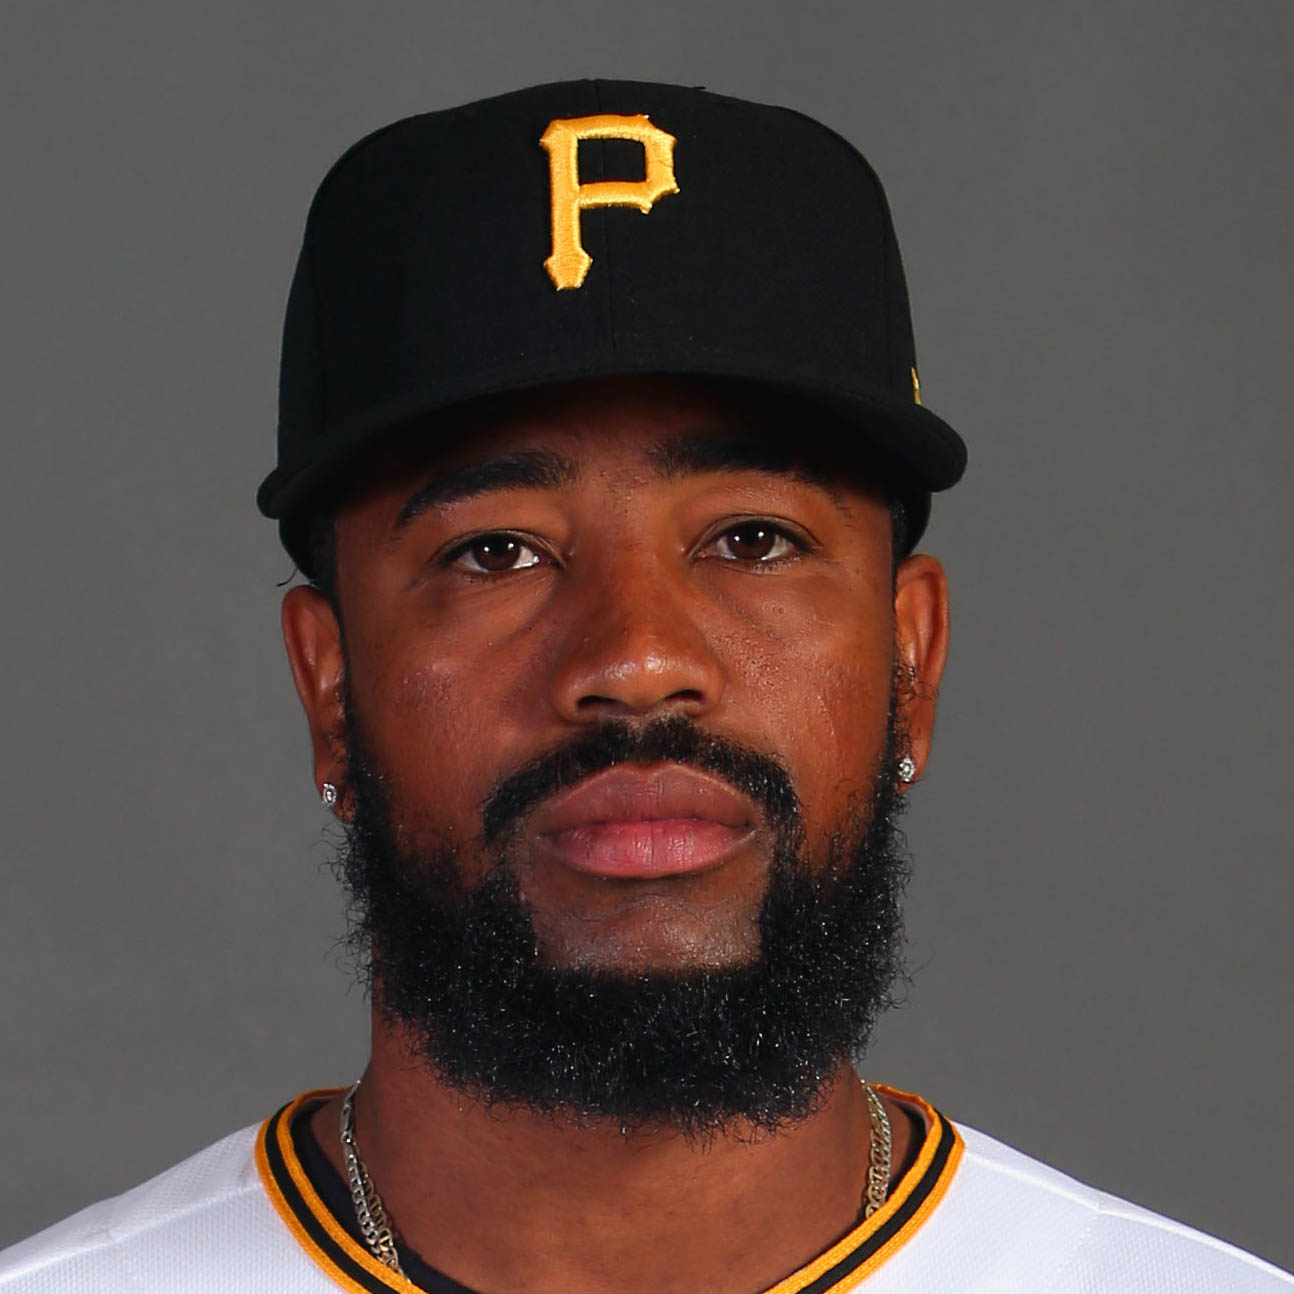 Felipe Rivero (L) Headshot